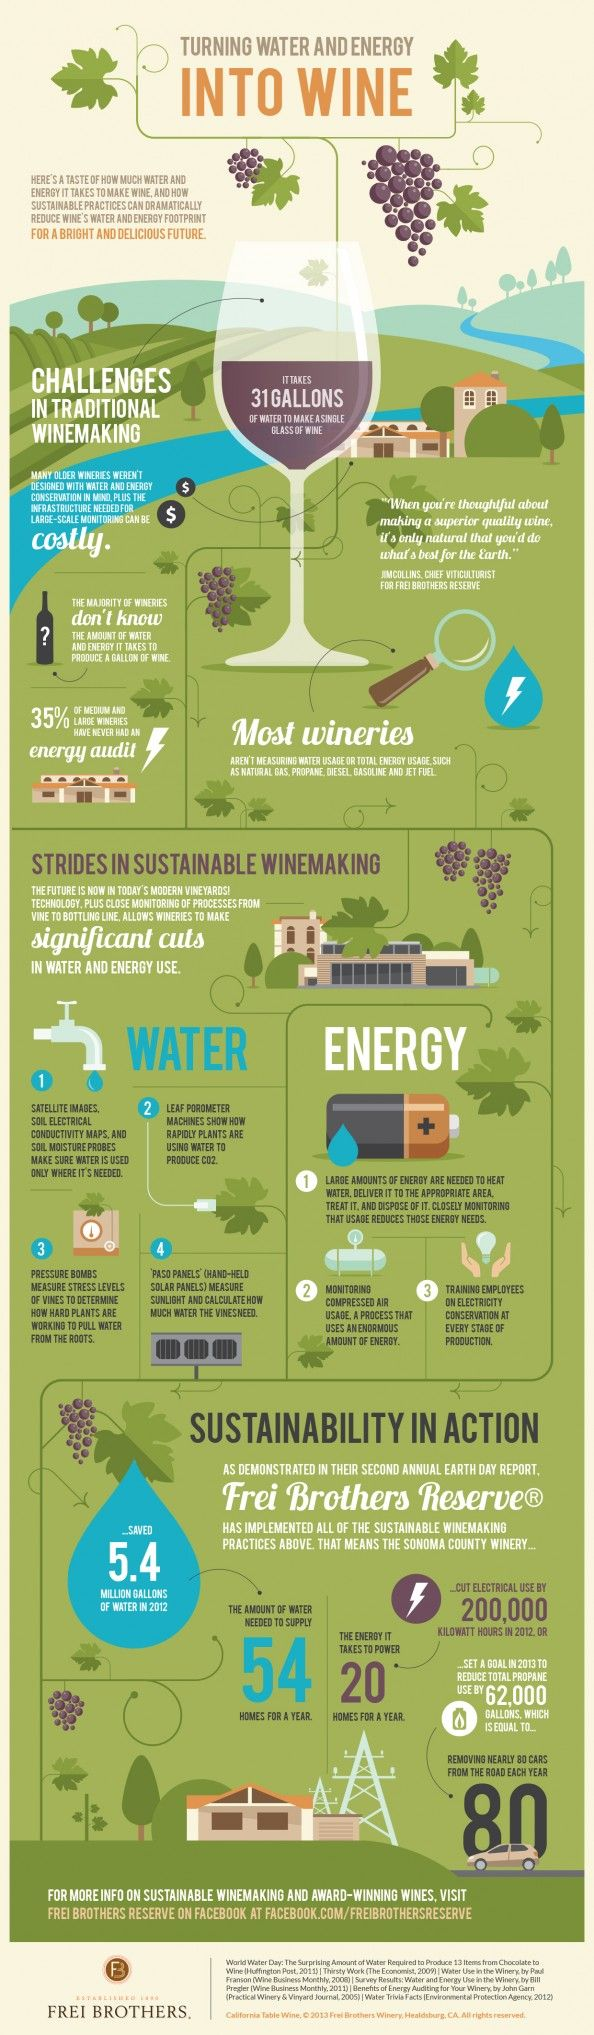 Turning Water and Energy Into Wine